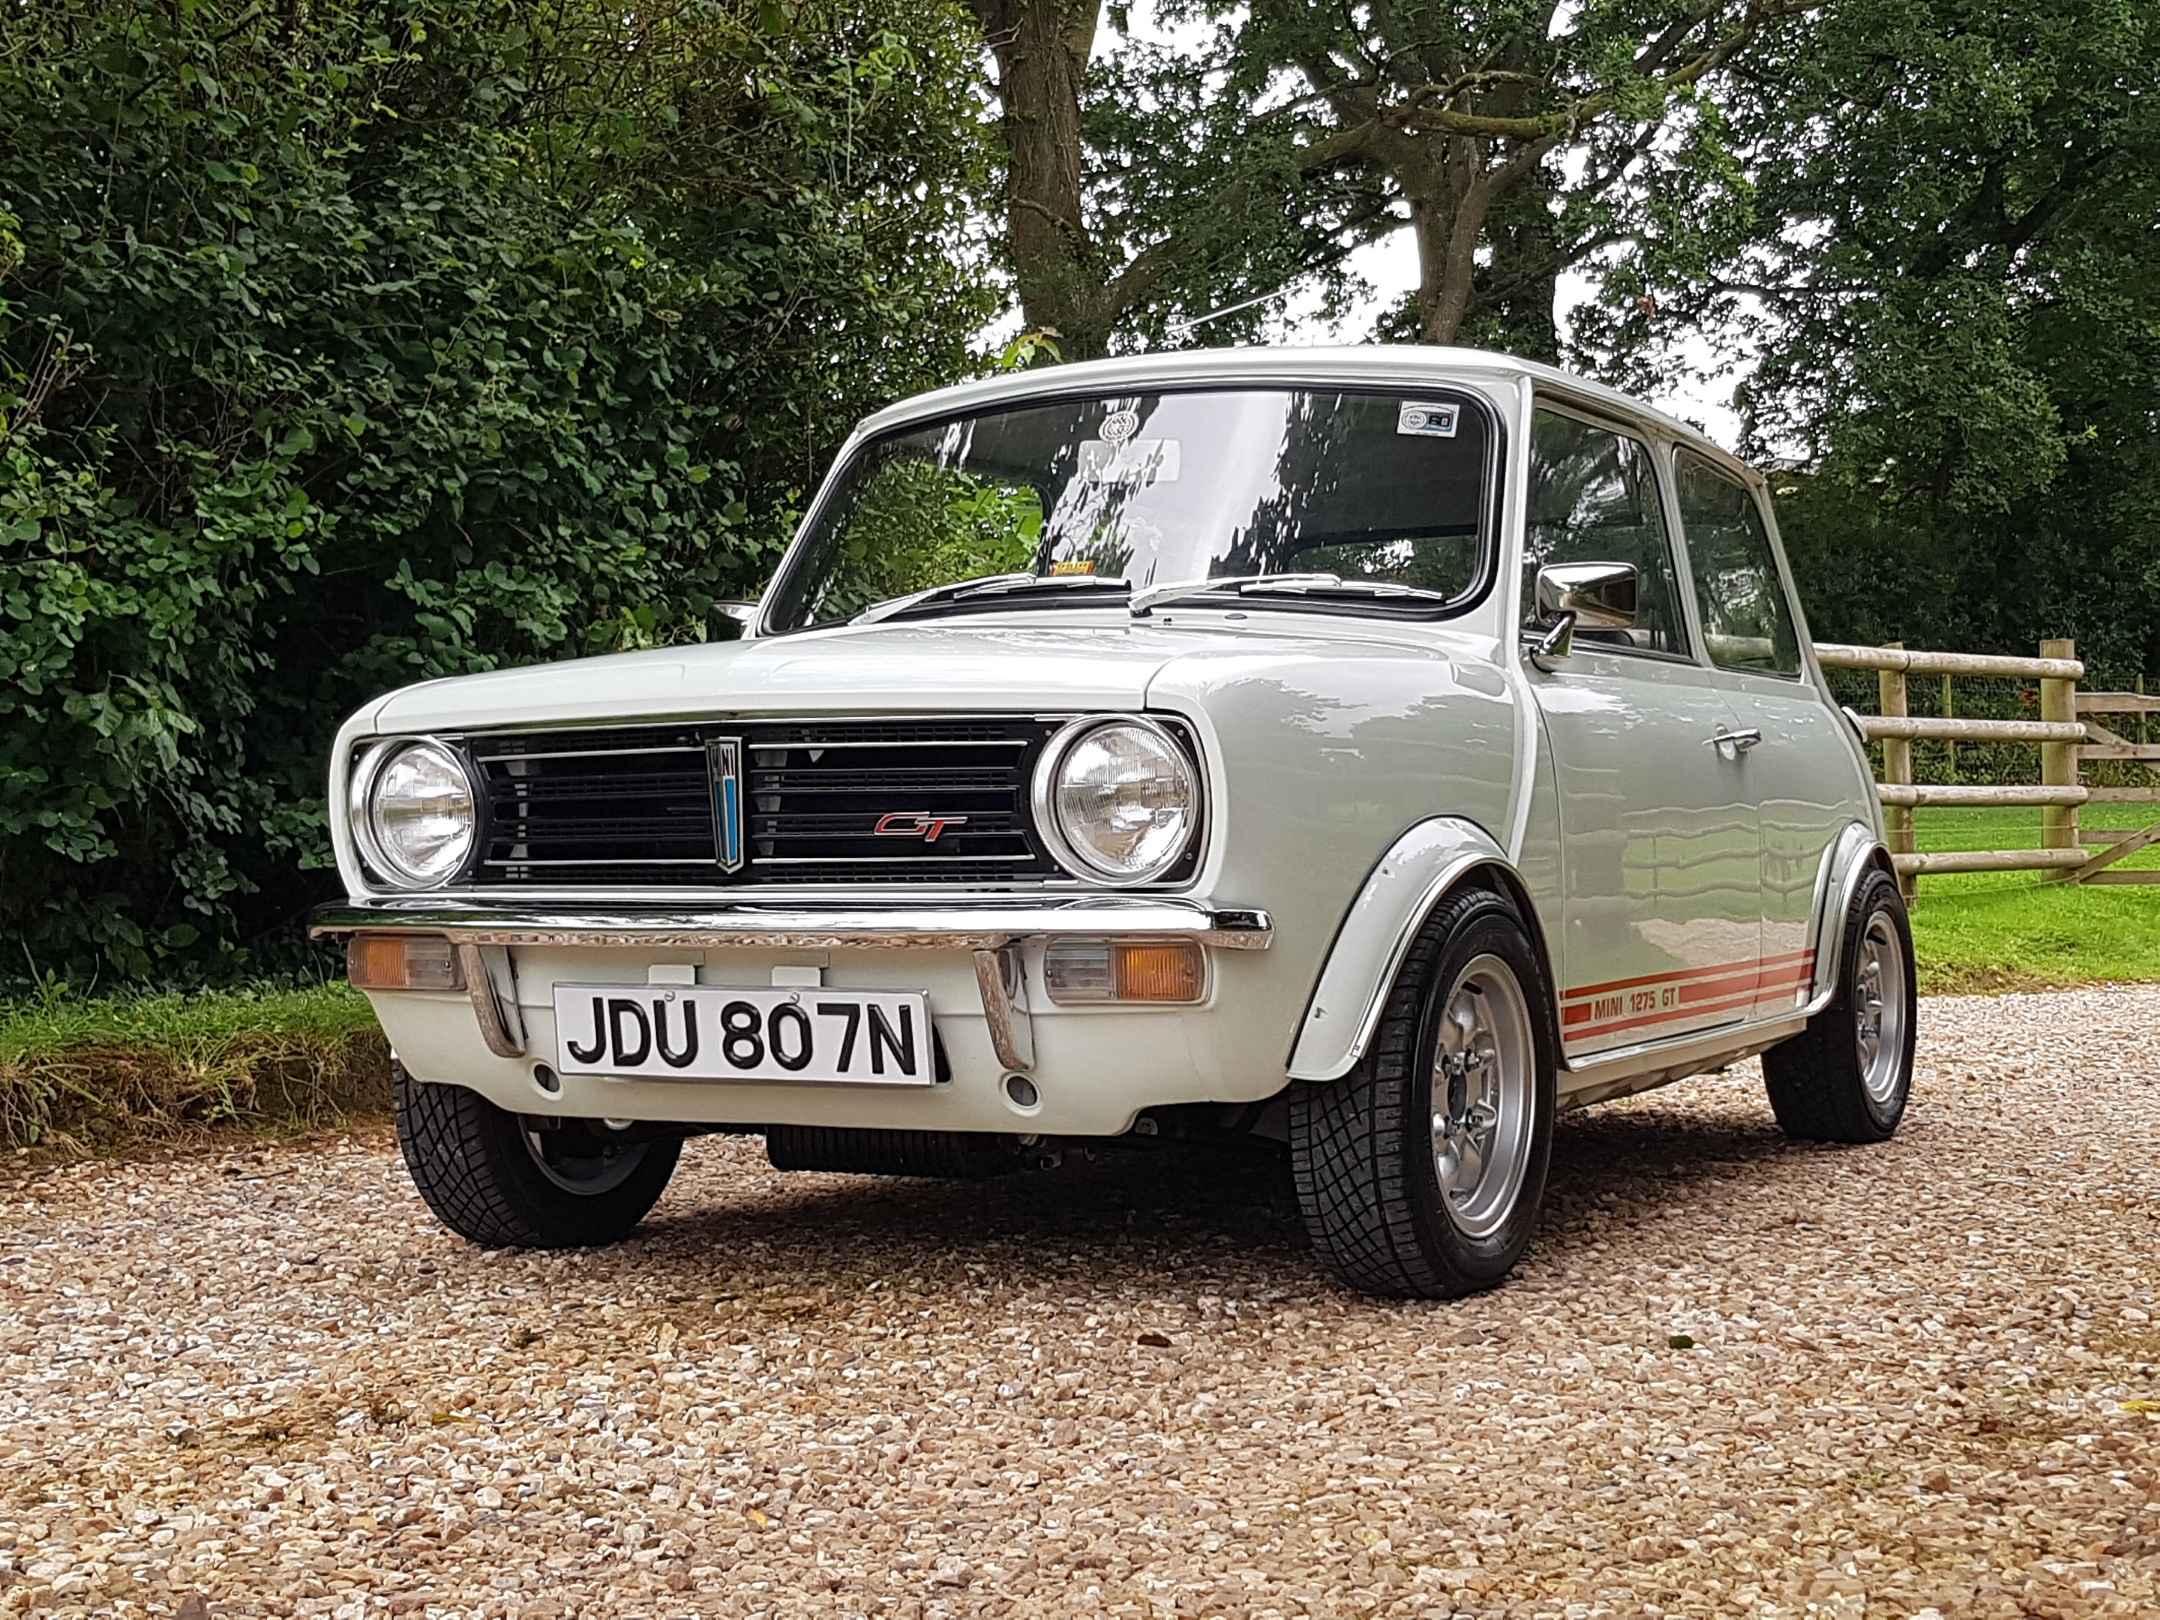 ** NOW SOLD ** Outstanding 1975 Austin Mini 1275 GT Special Tuning